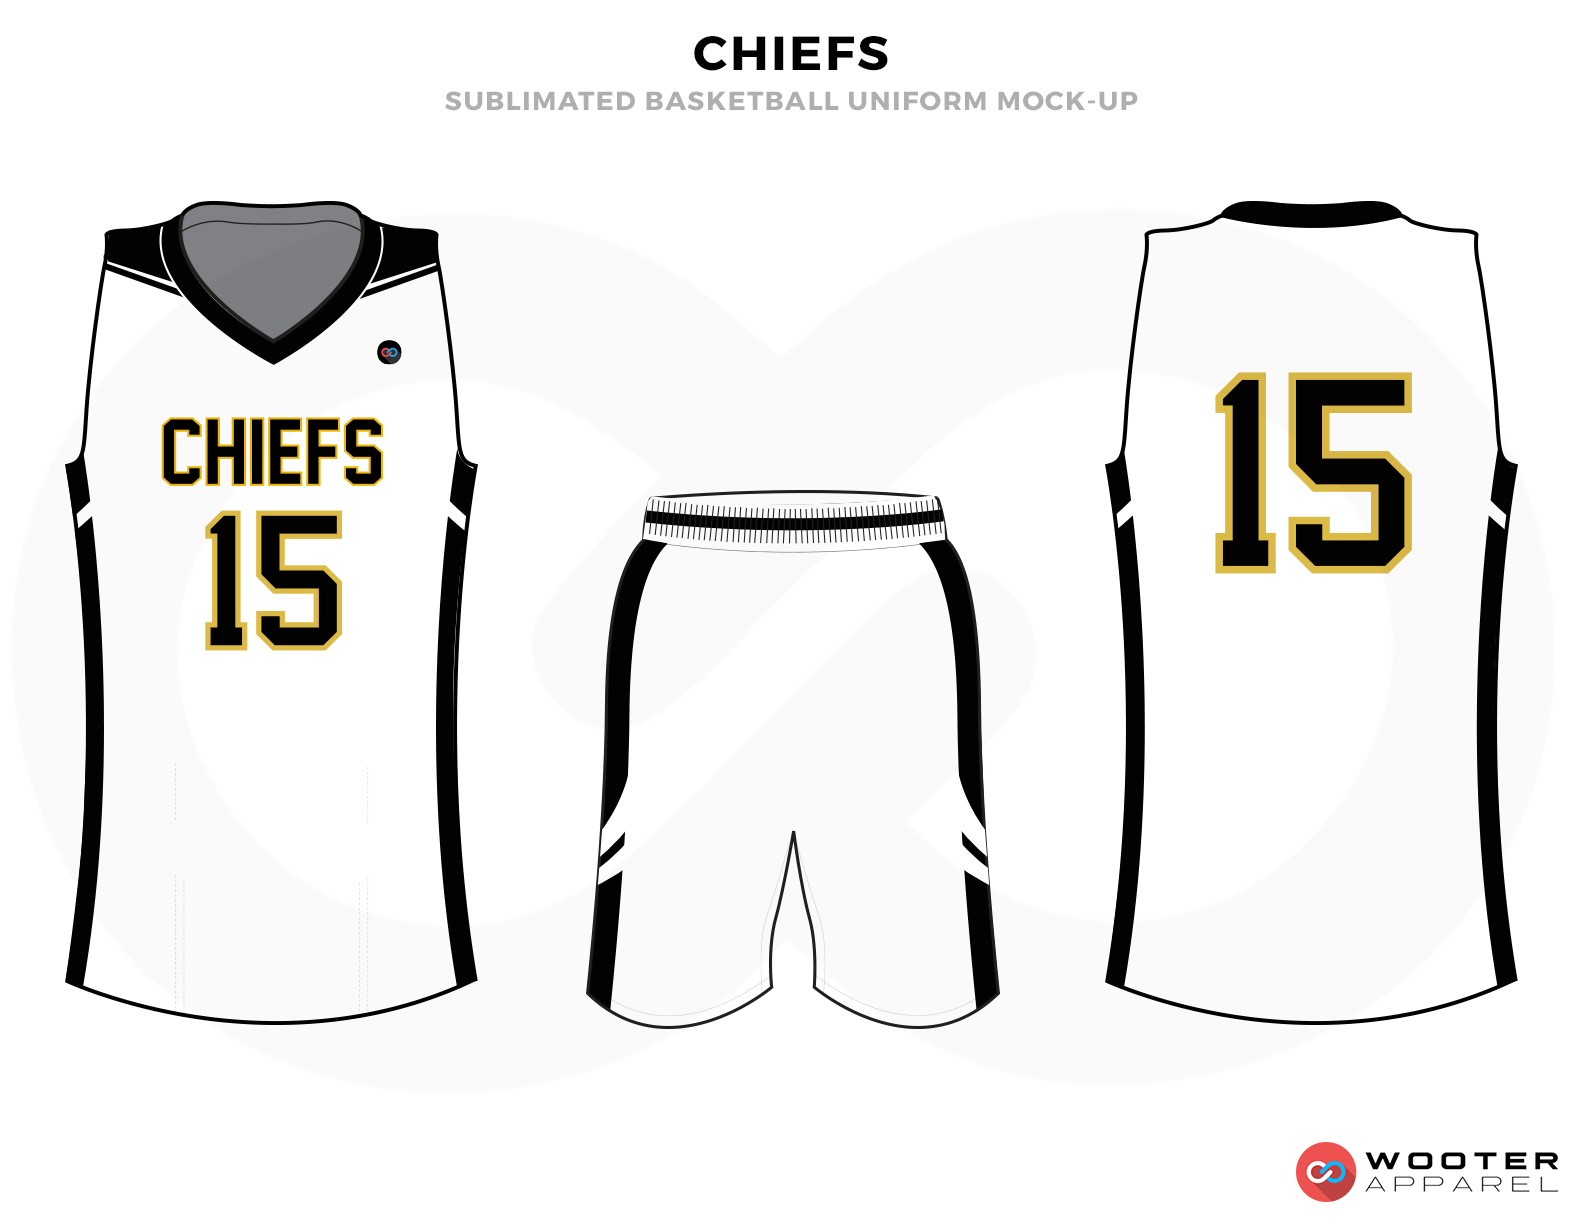 CHIEFS White Black and Yellow Basketball Uniforms, Jersey and Shorts